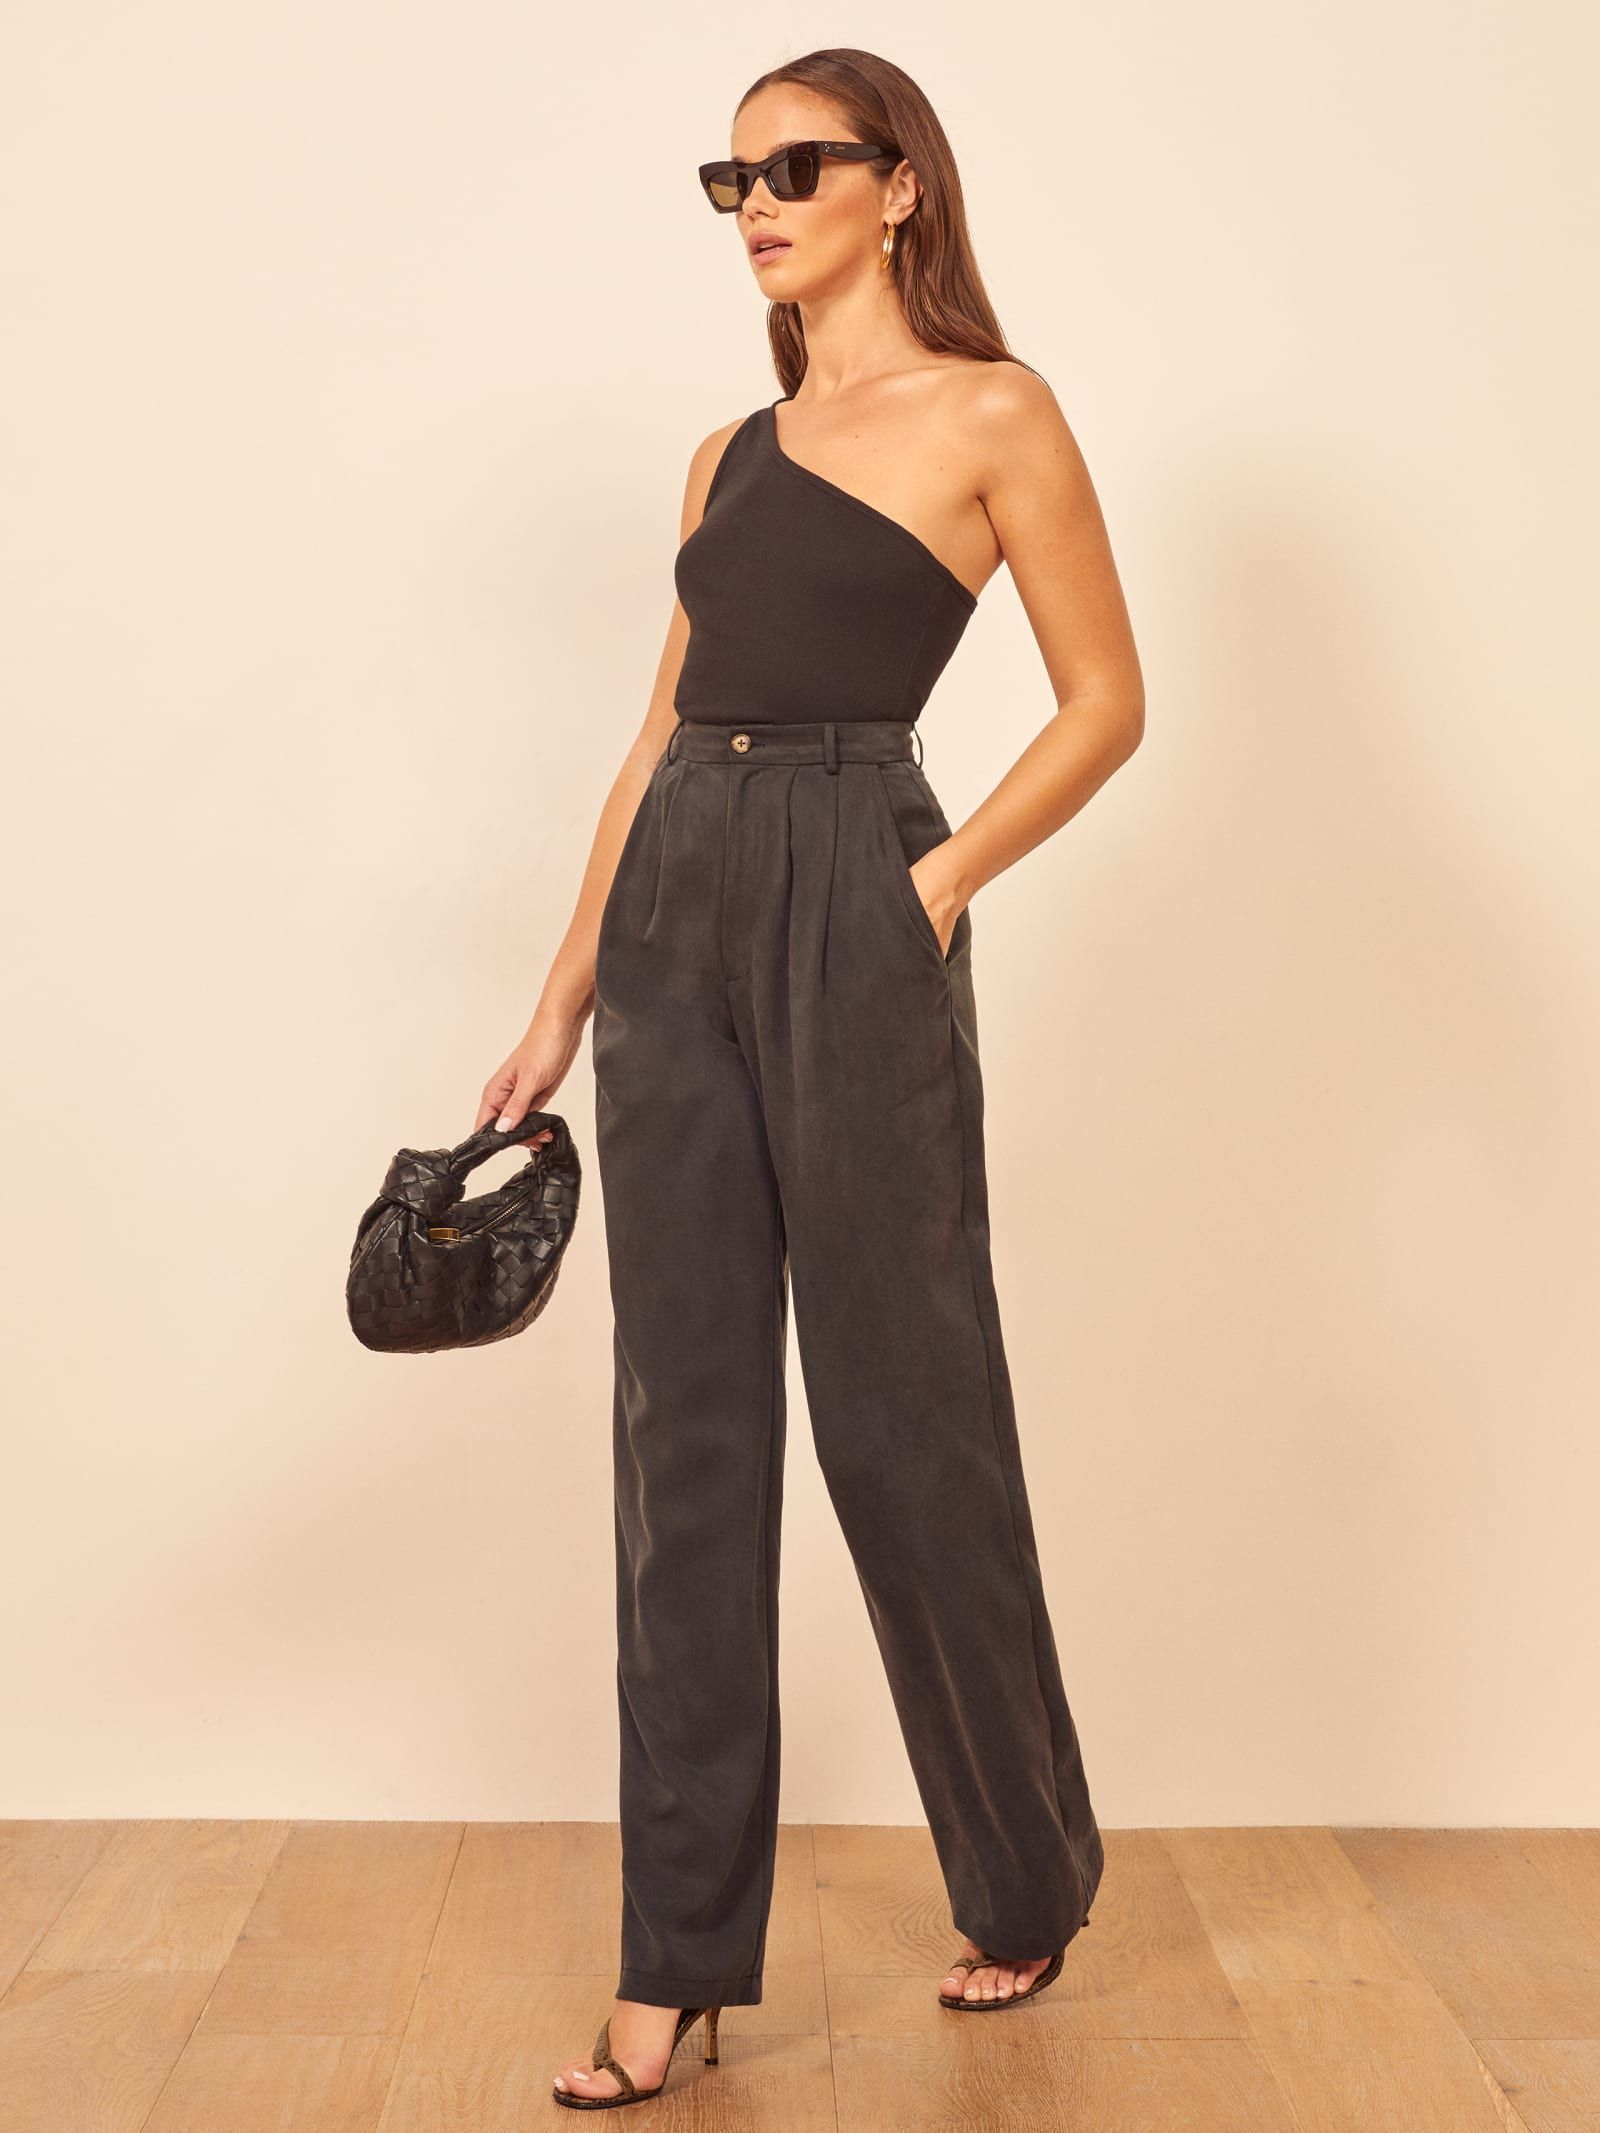 Mason pant contemporary outfits chic outfits office